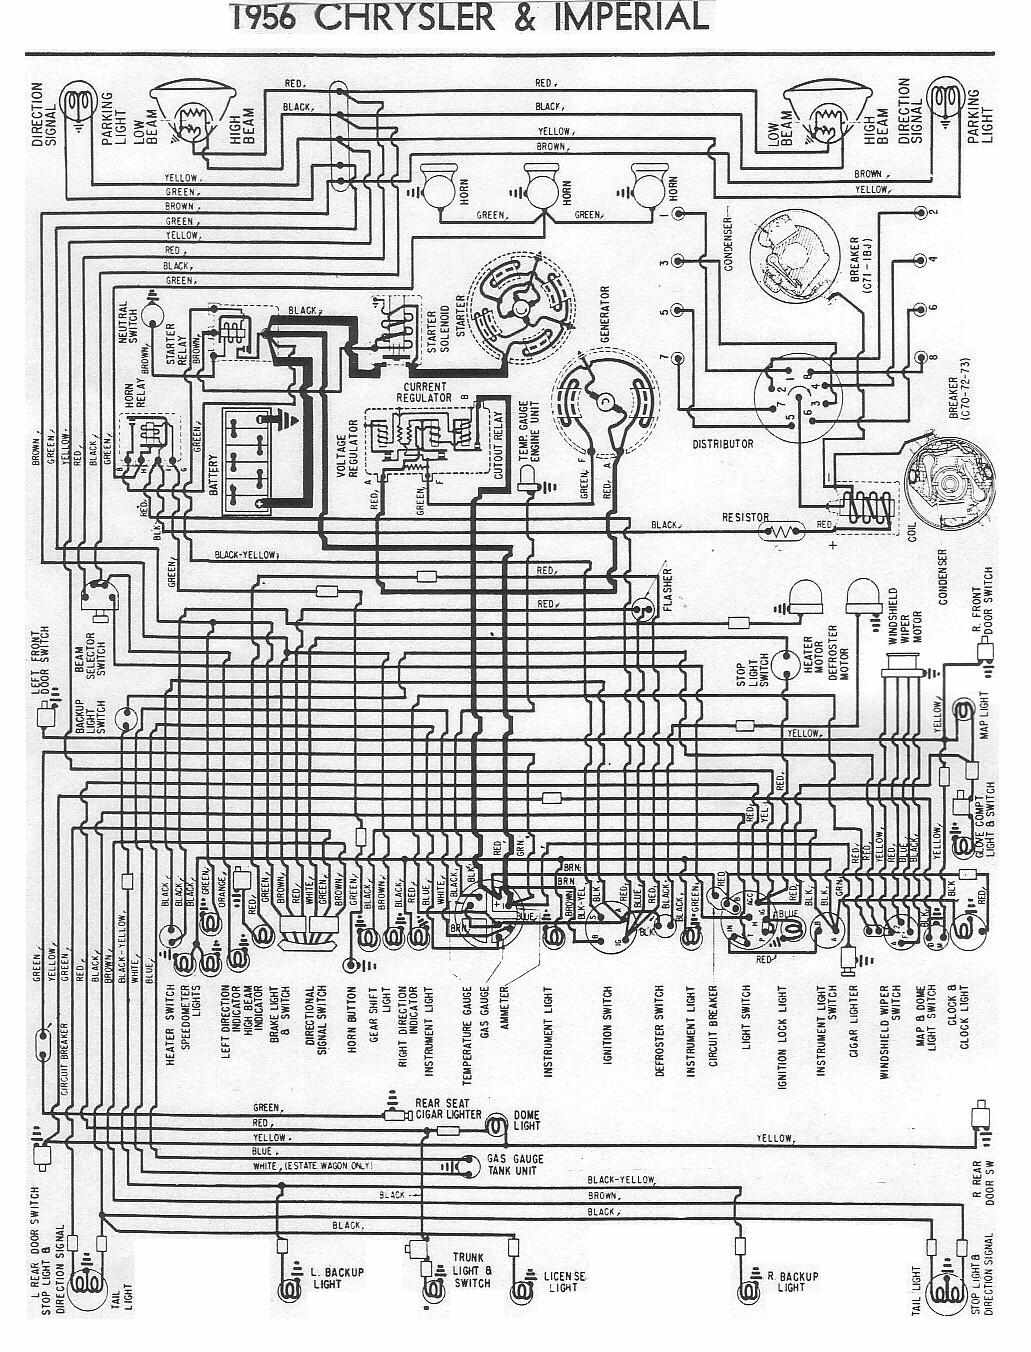 medium resolution of wiring diagram of 1956 chrysler and imperial circuit wiring wiring 1956 chrysler wiring diagram